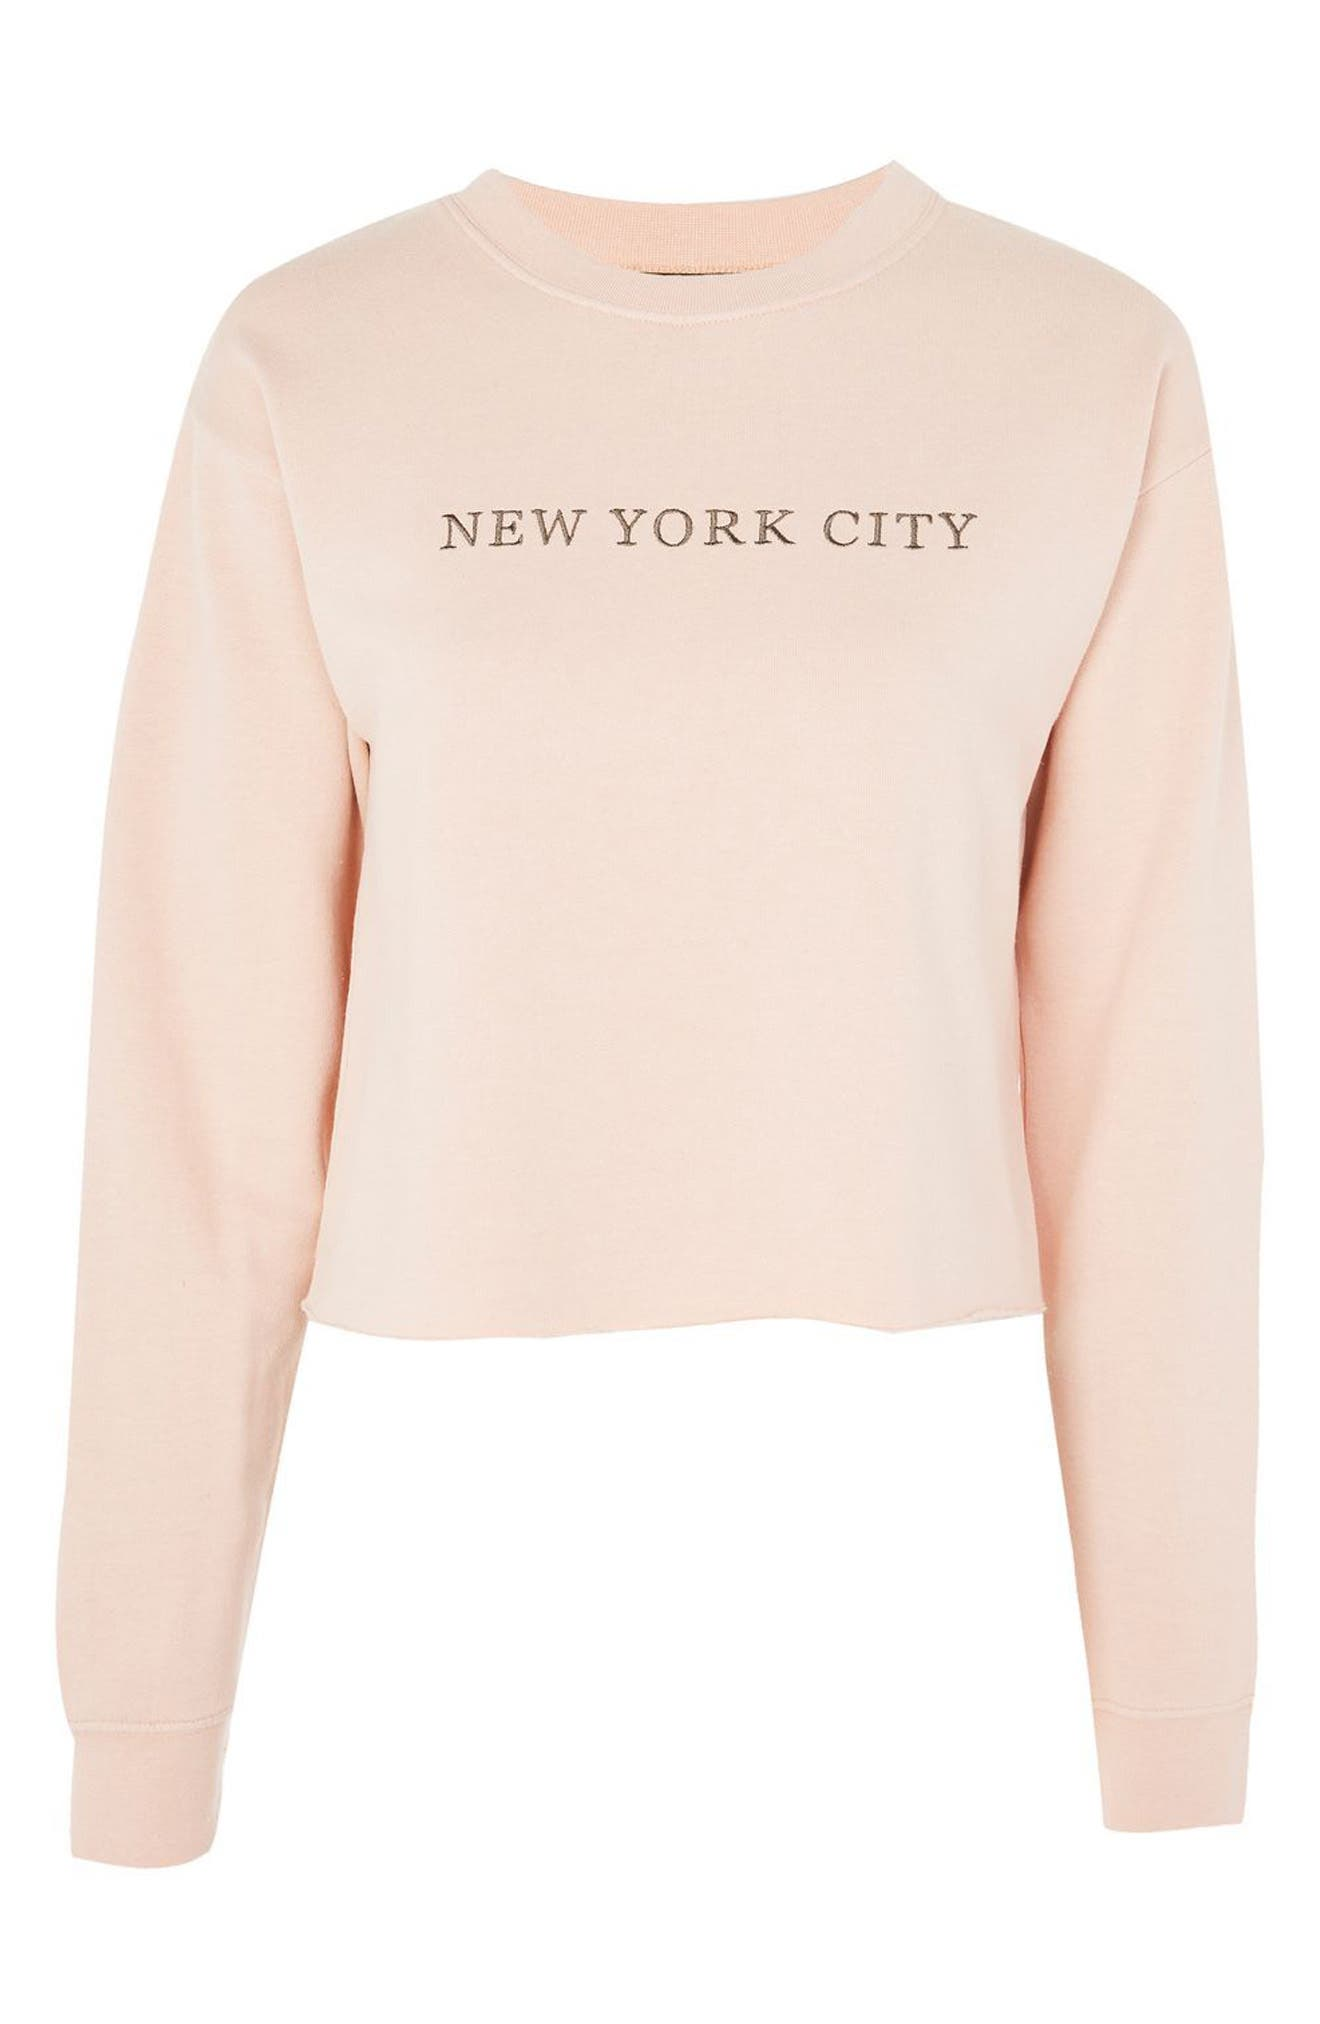 New York City Embroidered Sweatshirt,                             Alternate thumbnail 3, color,                             650